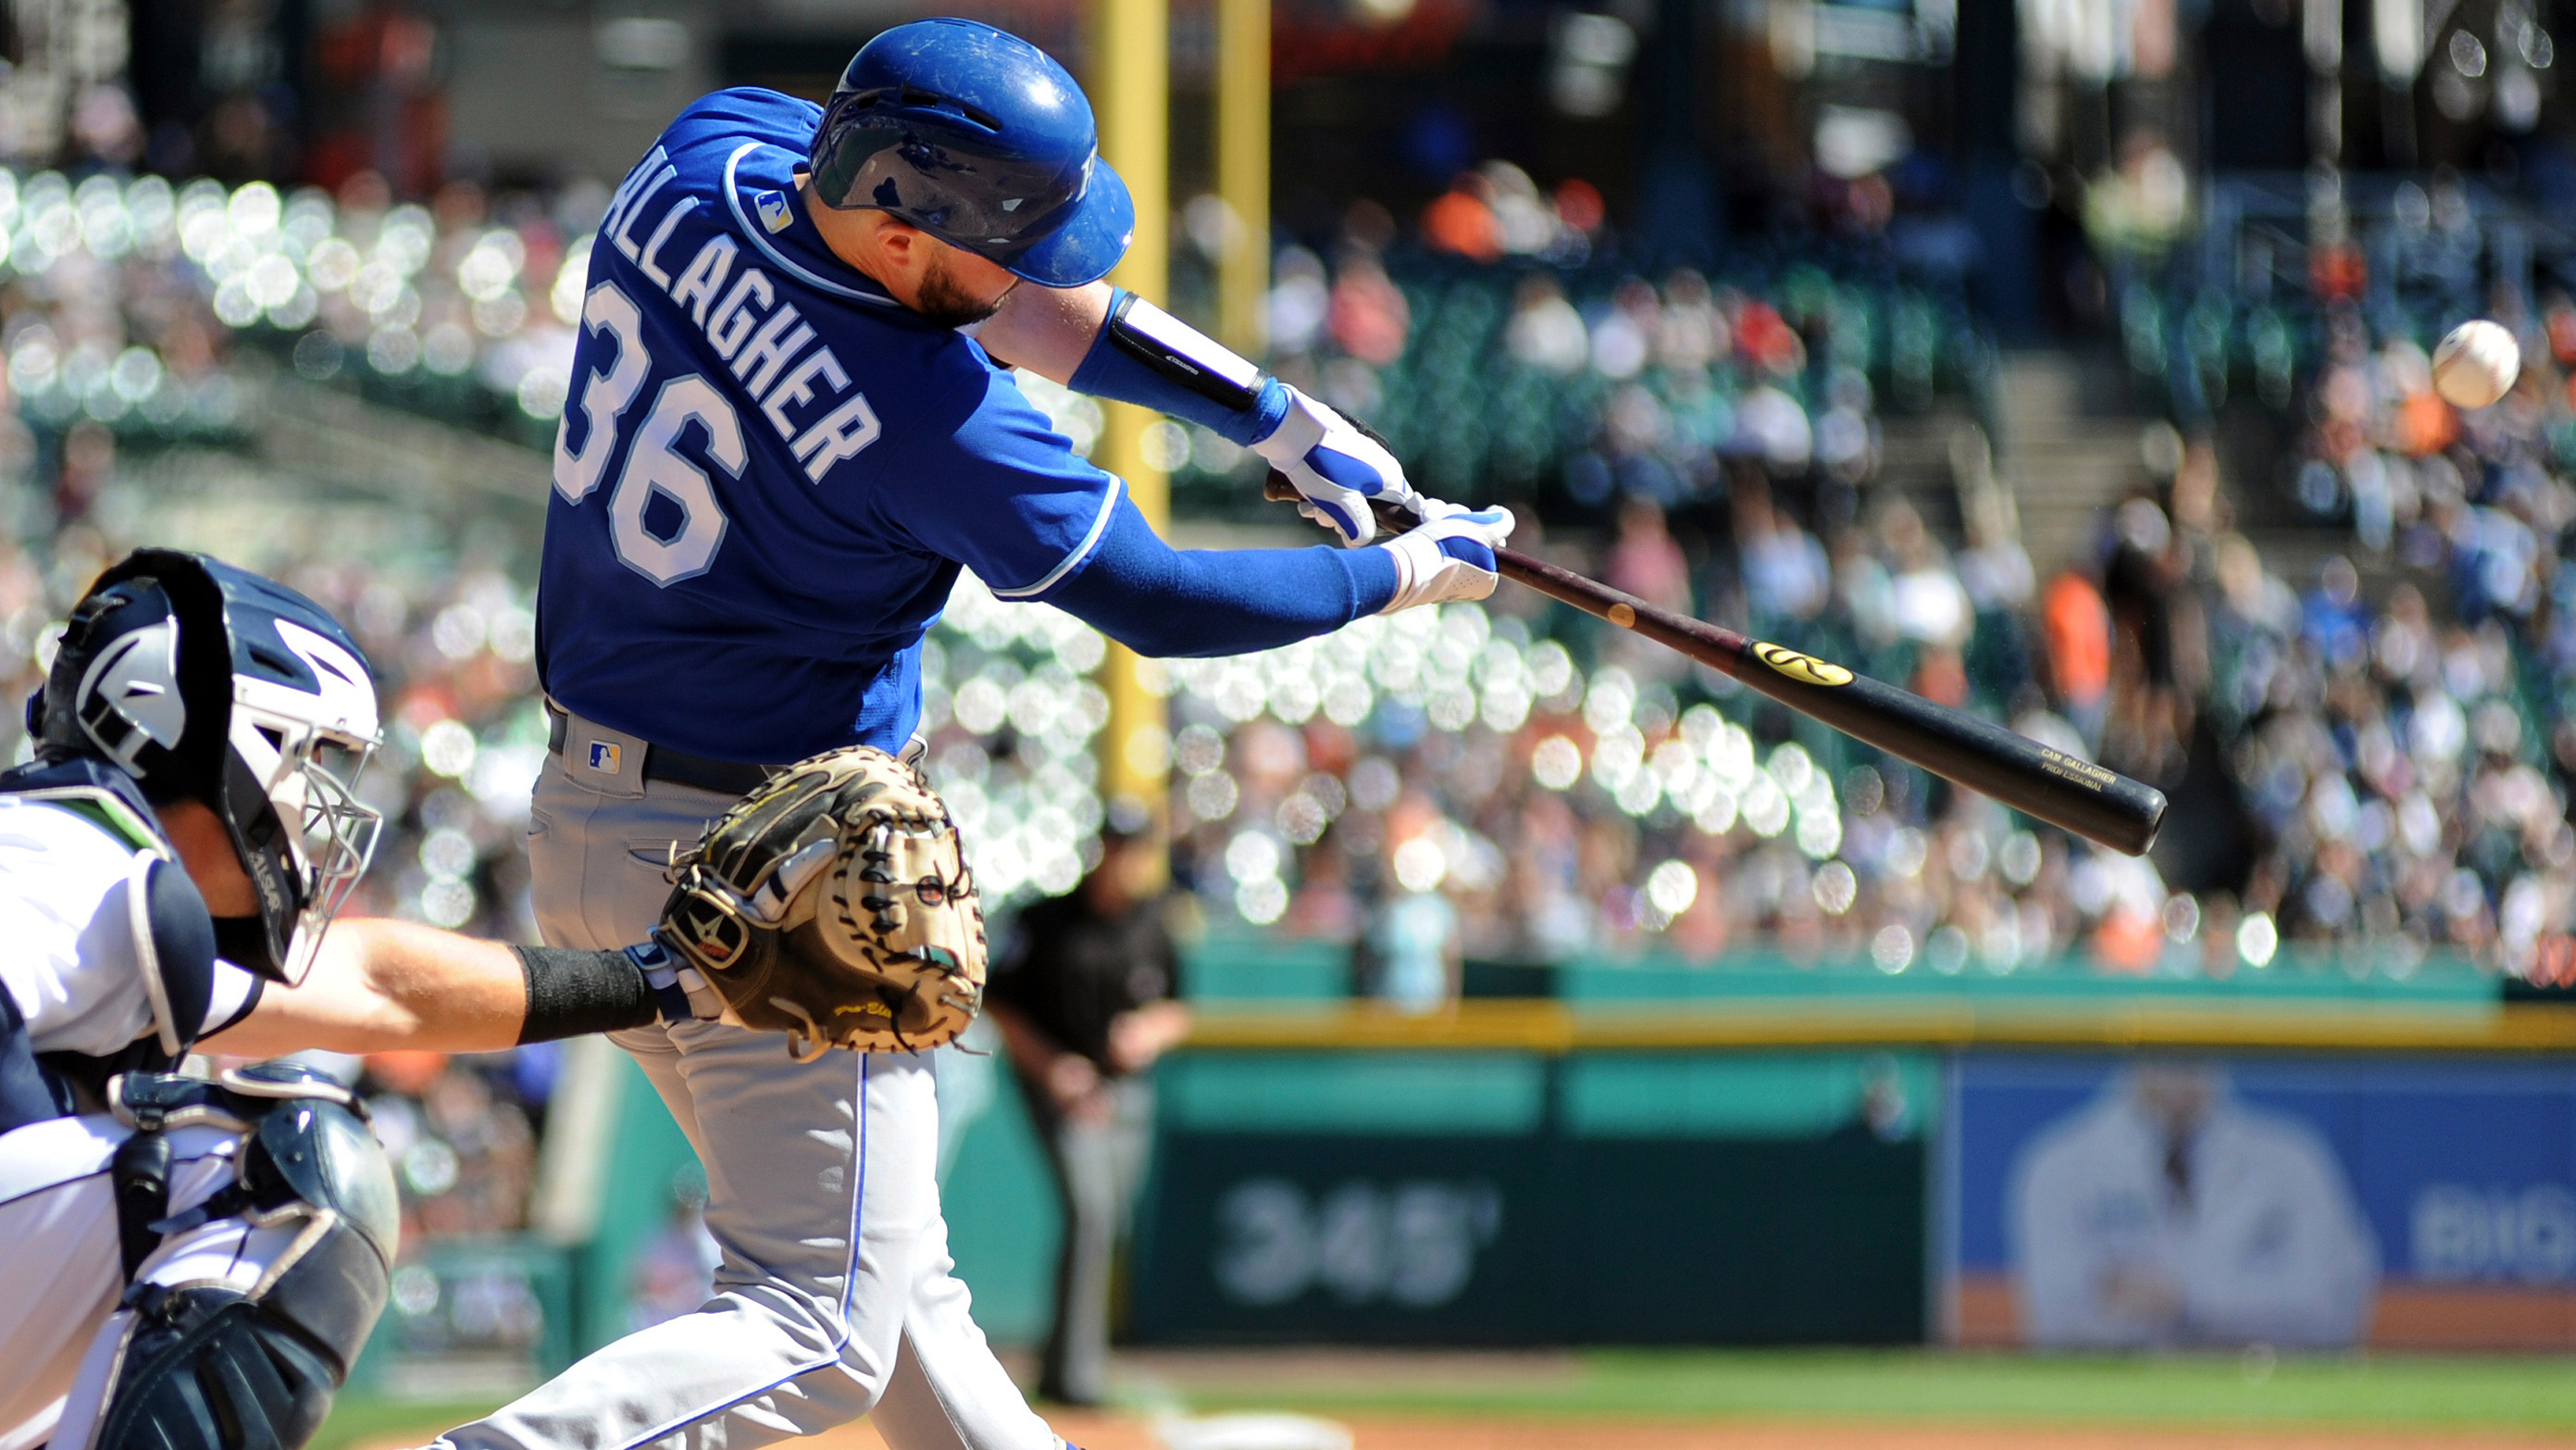 Gallagher's bloop hit backs Keller's strong start as Royals split series with Tigers